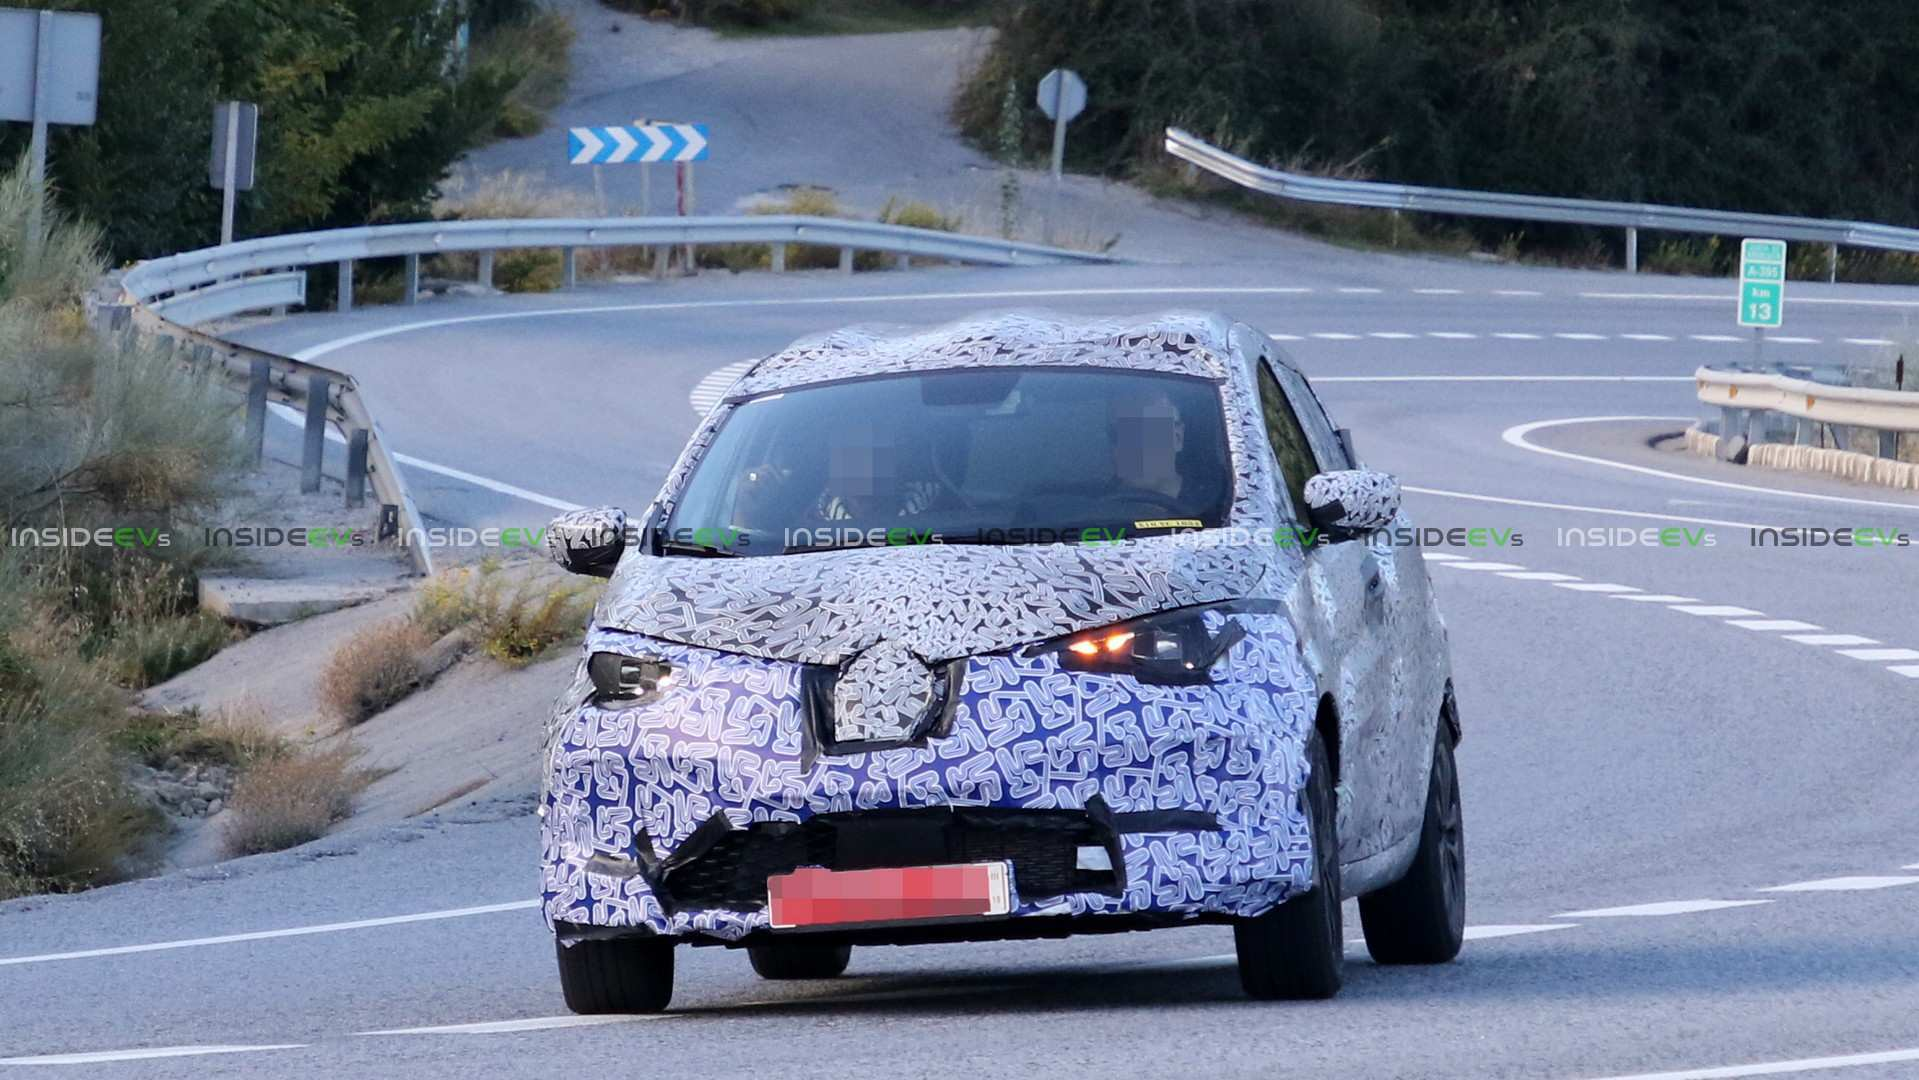 71 All New Zoe Renault 2020 Reviews for Zoe Renault 2020